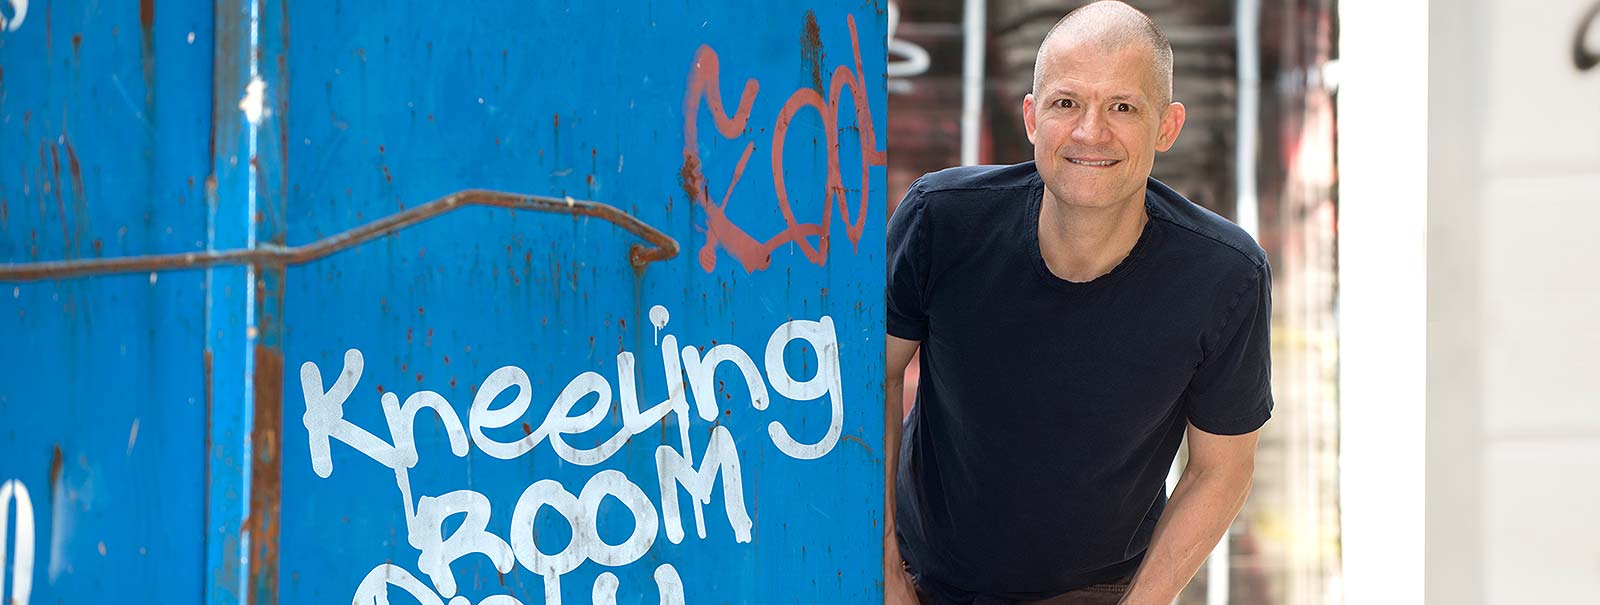 More Info - Jim Norton Kneeling Room Only Tour